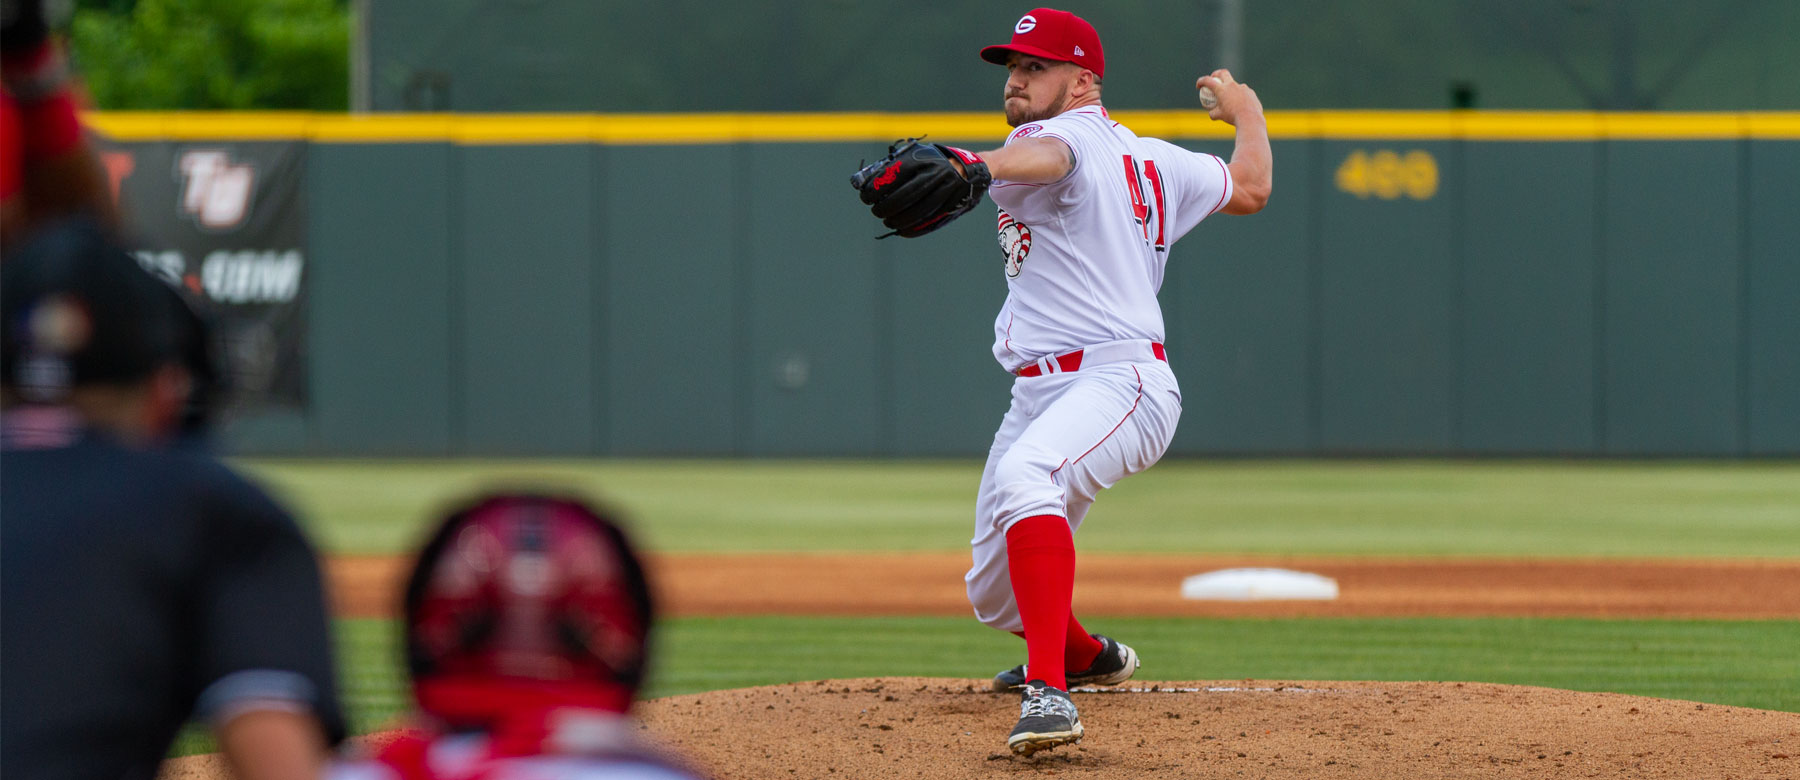 Graham Ashcraft hits 100 MPH, other Reds notes | redsminorleagues.com